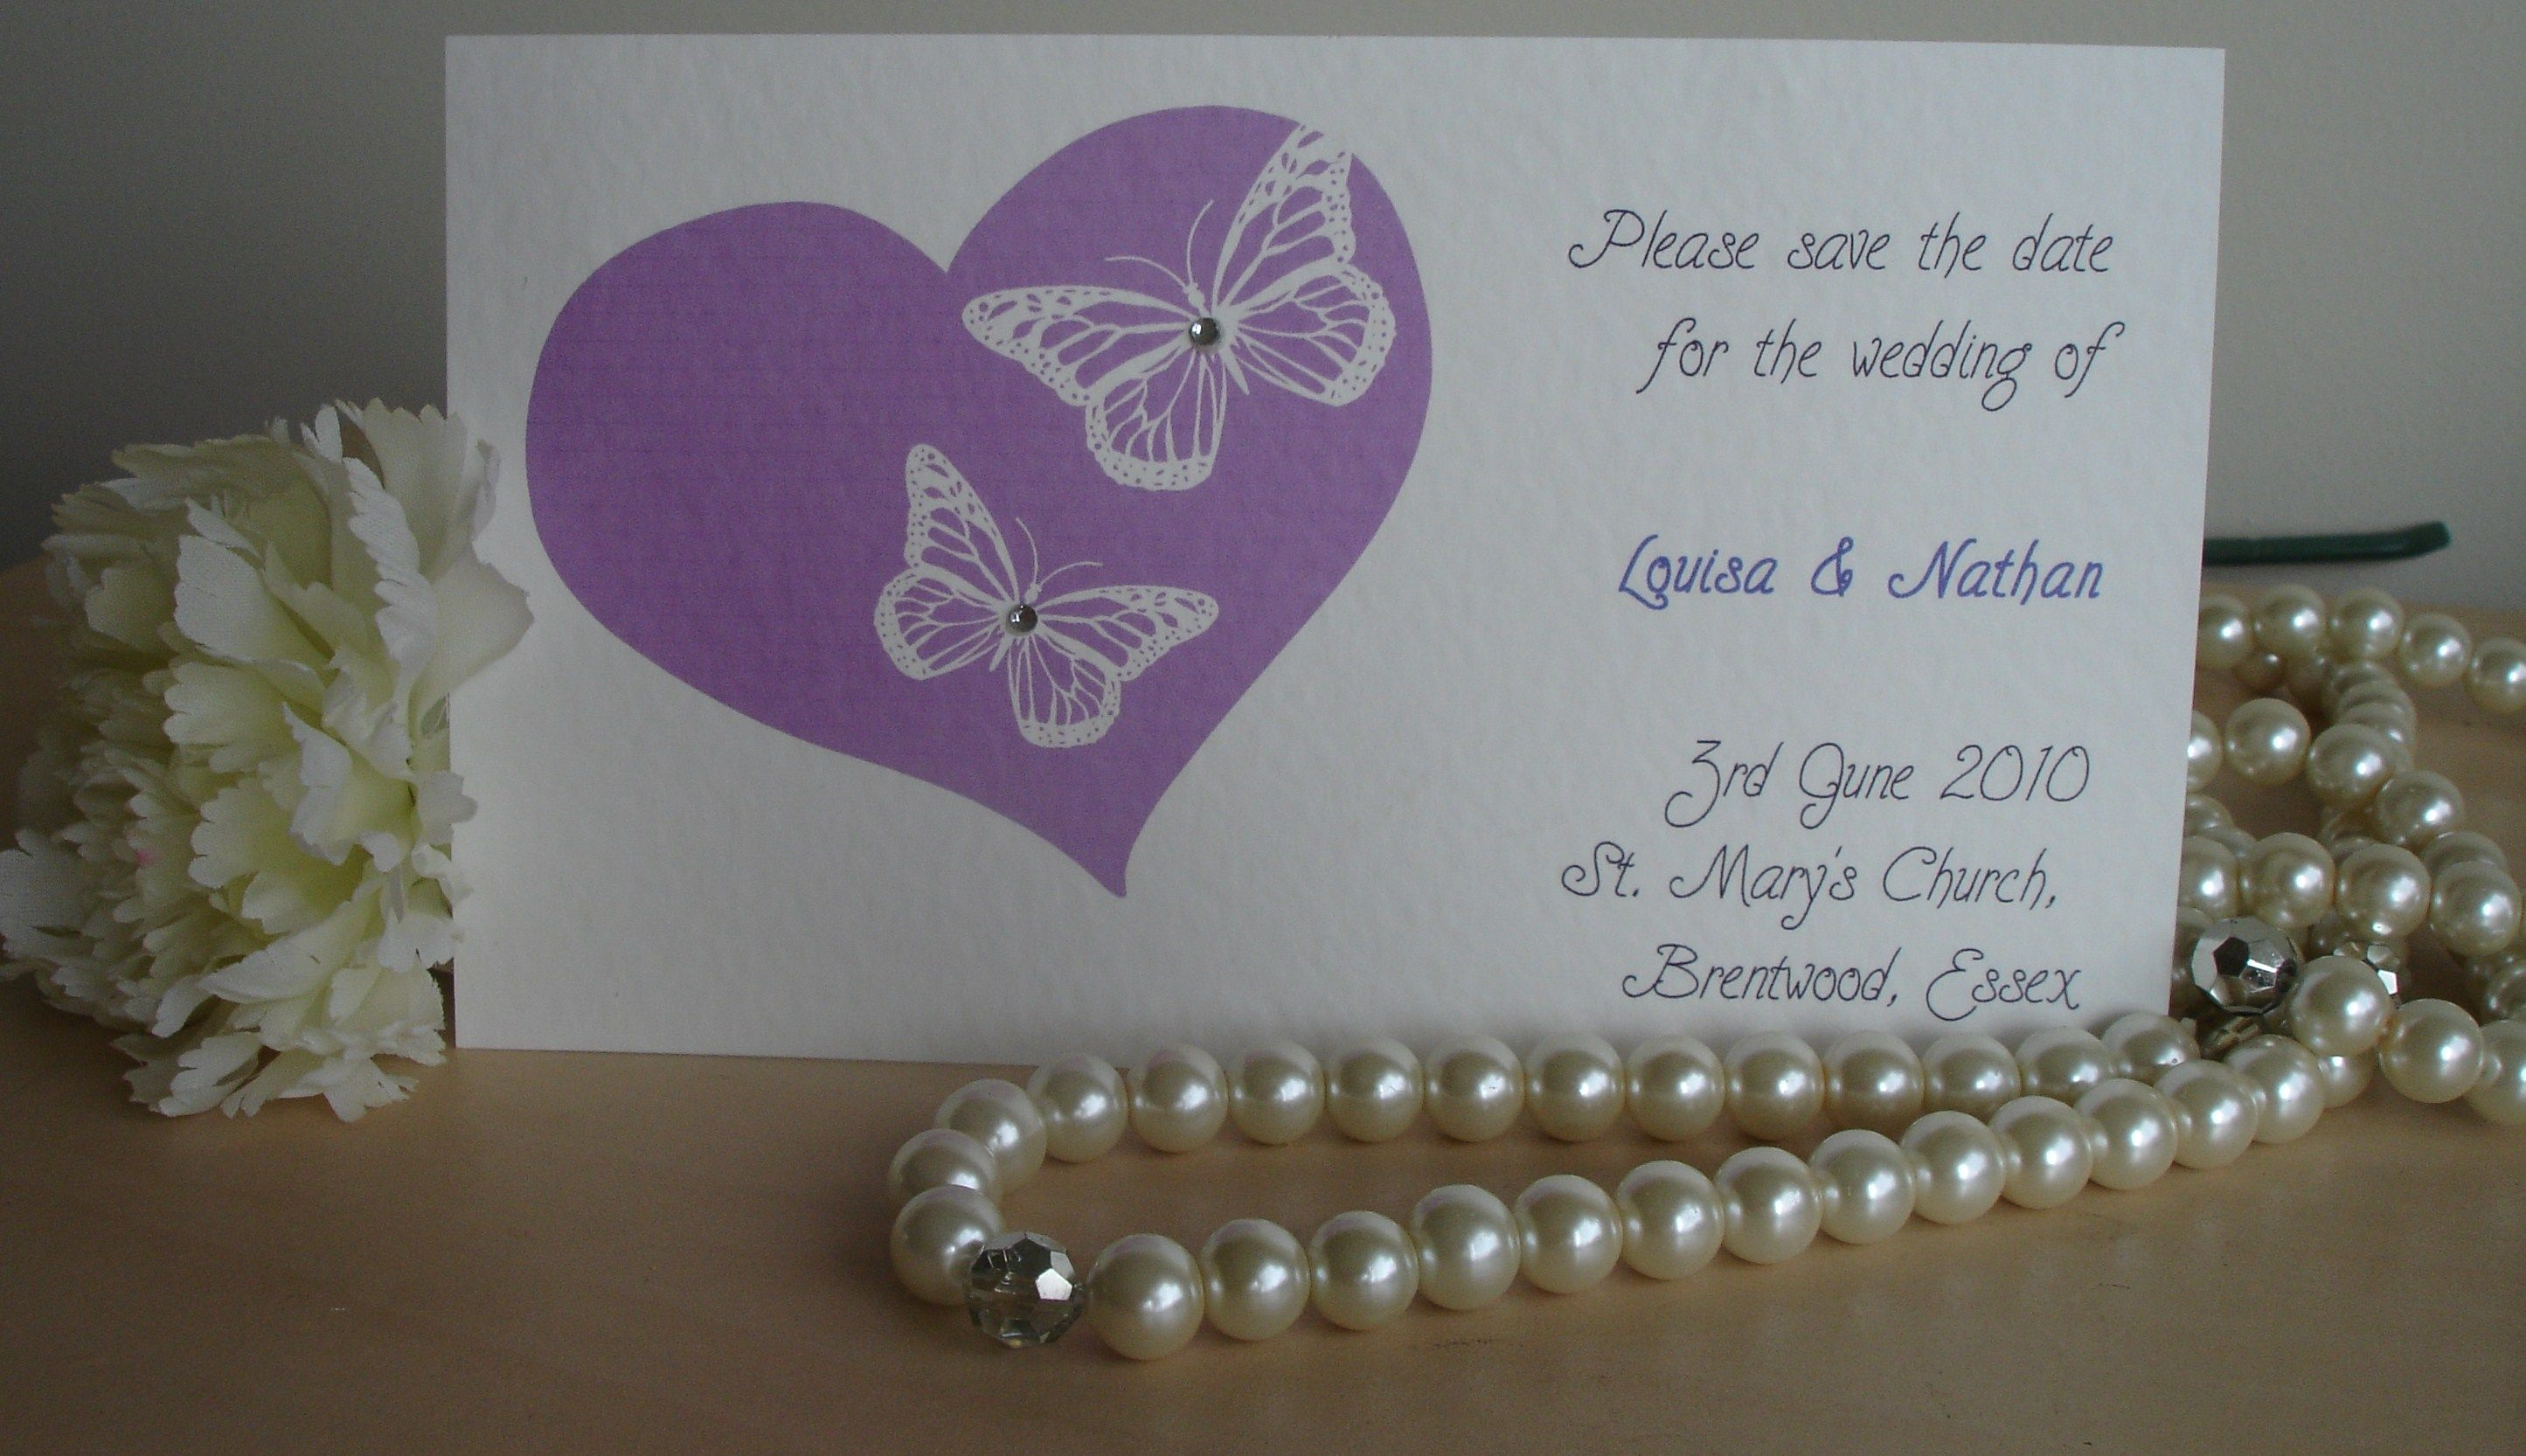 'Butterfly Save the date' by Invitations 4 Occasions